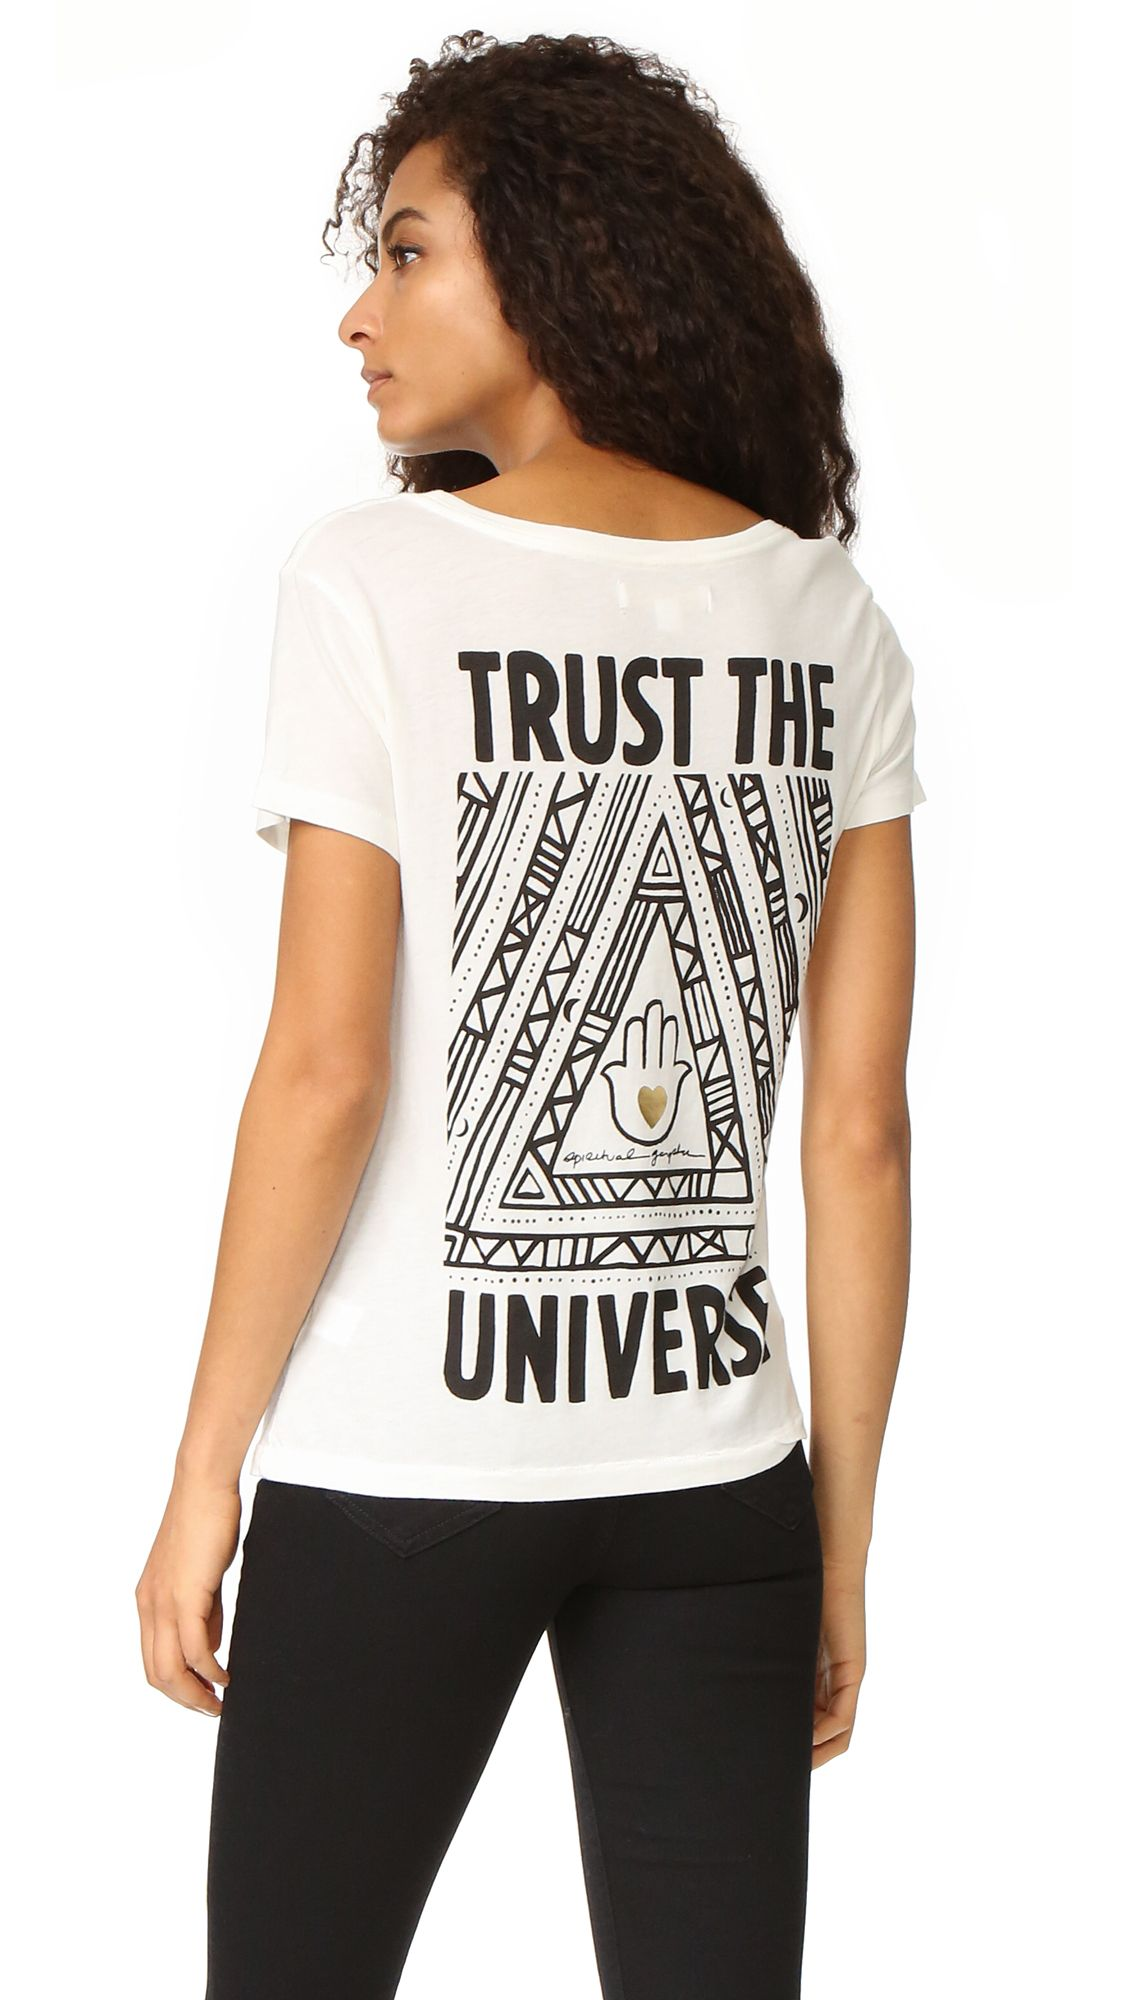 Trust the Universe Scoop Tee #giftstyle